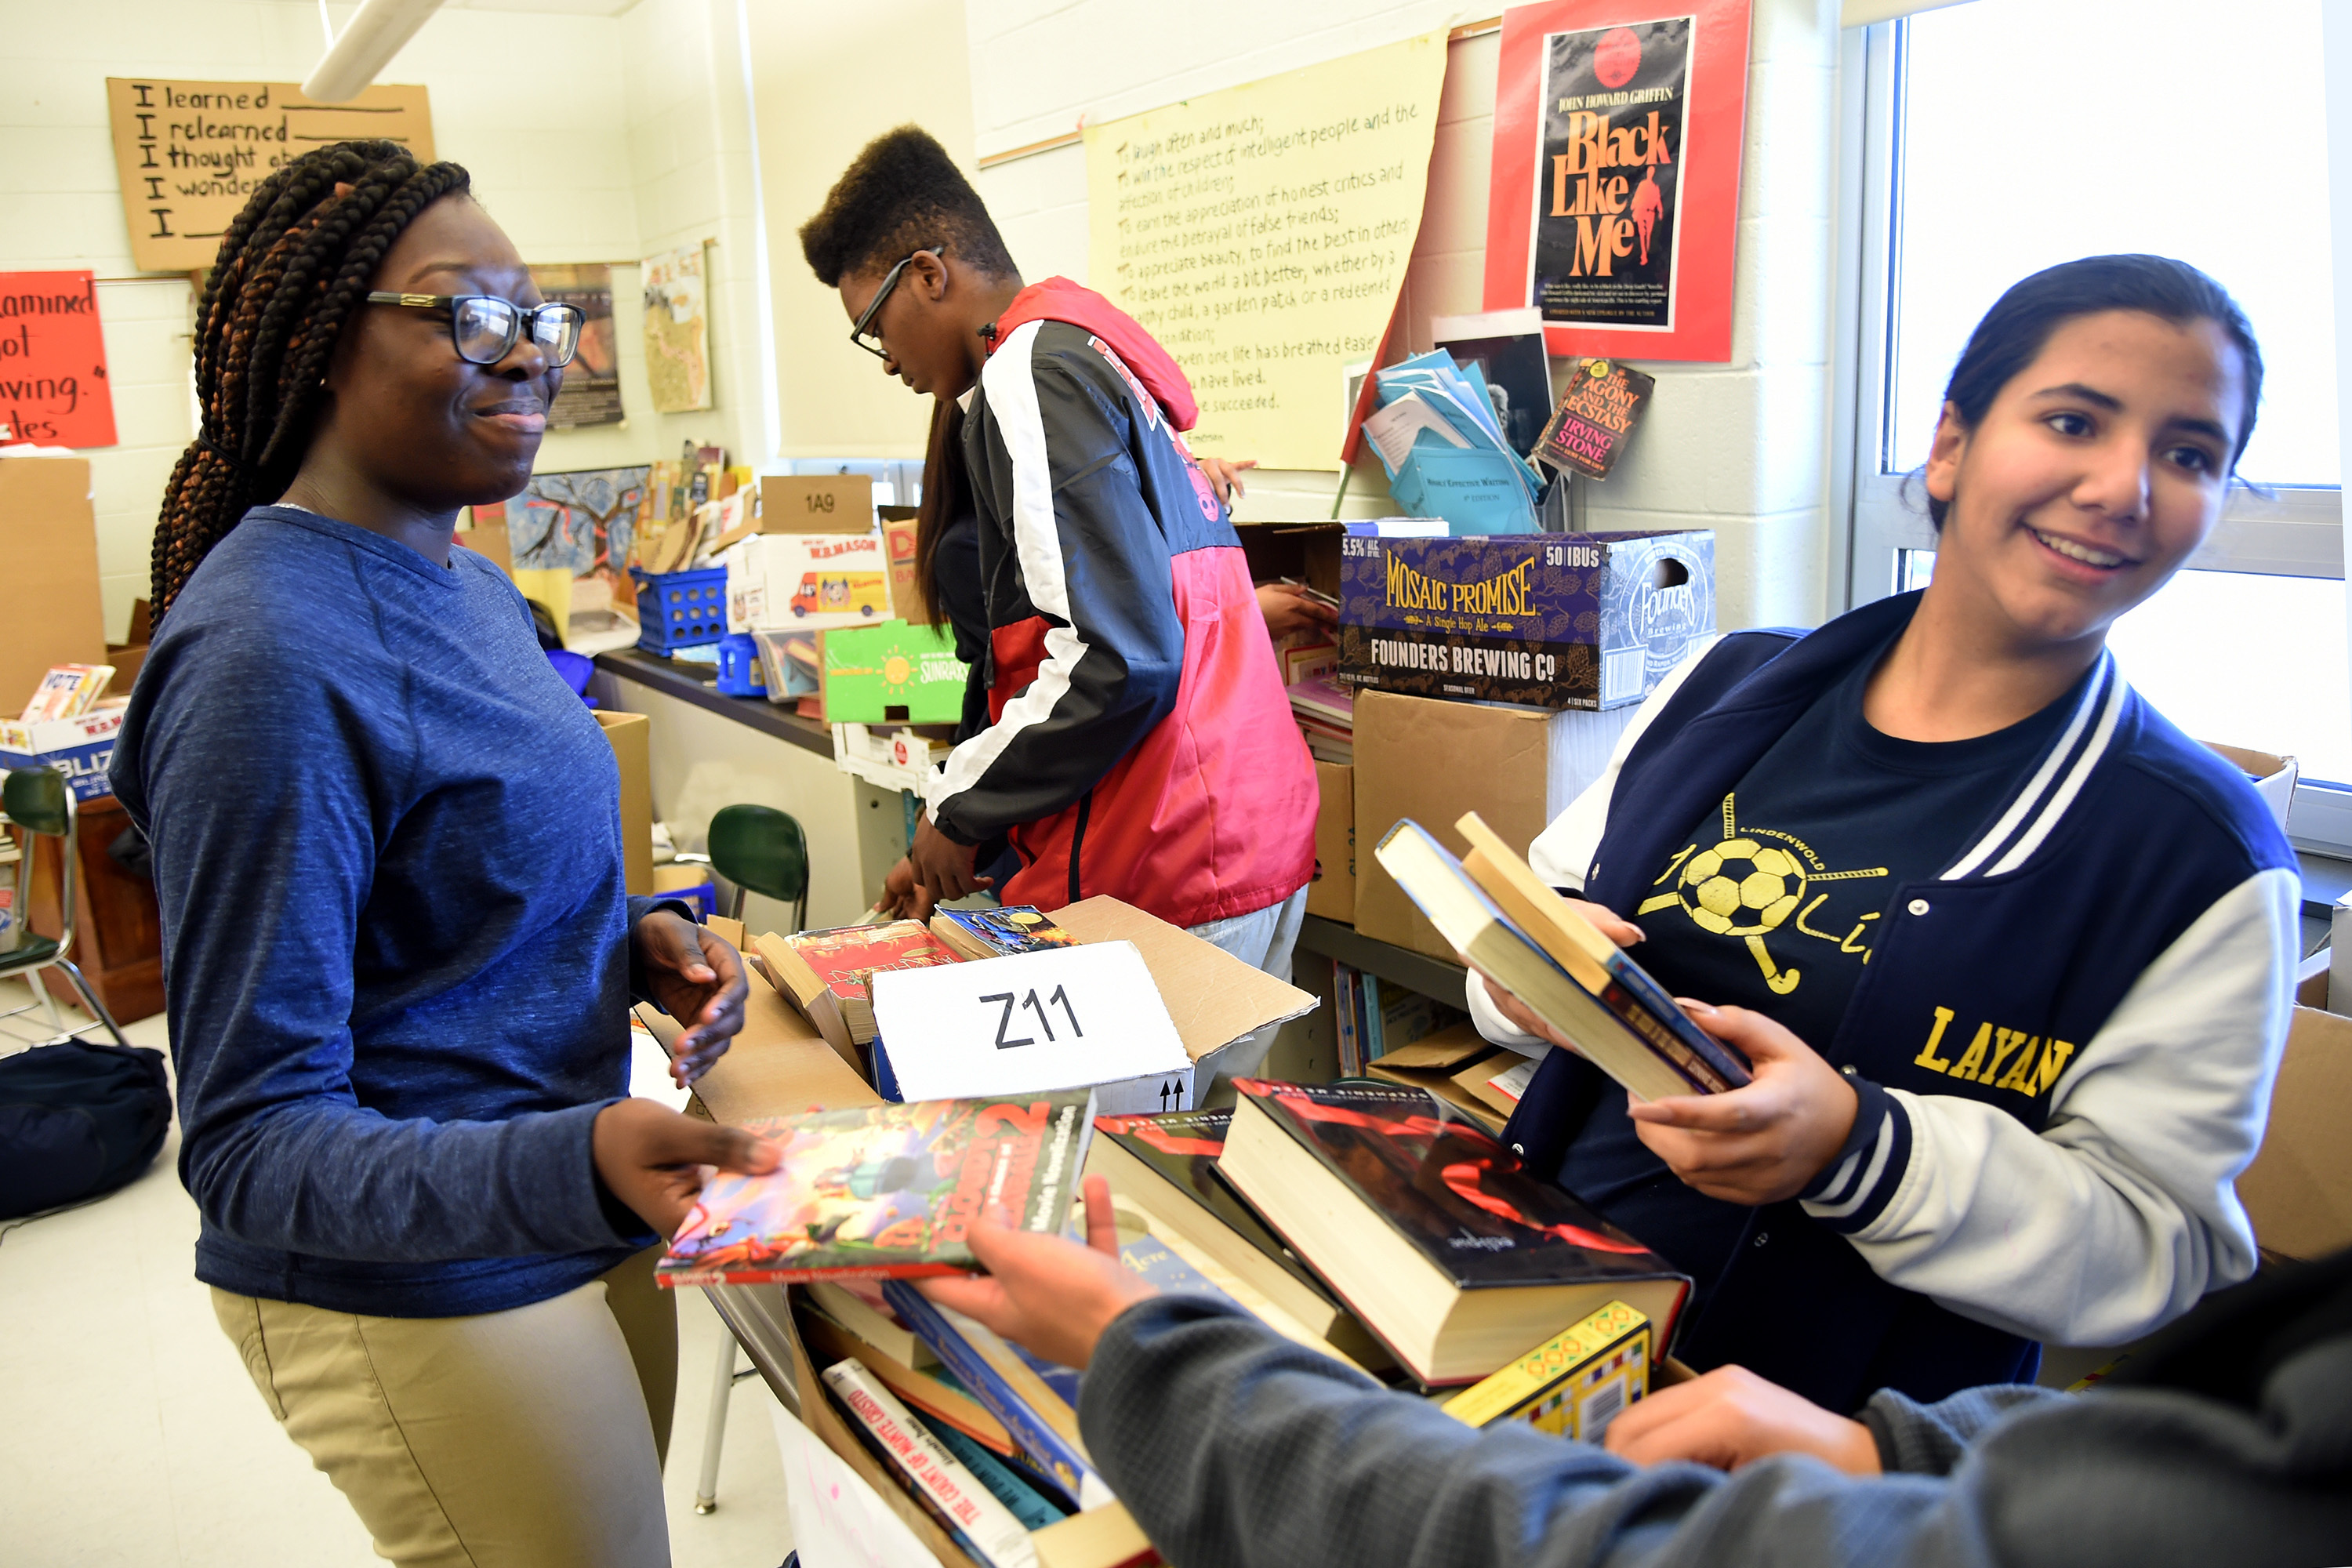 Students of Lindenwold High School English teacher Larry Abrams (not shown), Olivia Meizan (from left) Jayden Brown, and Layan Muhamed sort books to give away January 3, 2018. Abrams has started a book collection and donation charity to help his low-income students, many of whom had poor literacy skills in his 9th grade English class. He collects from all over the region and distributes at school functions. He´s hoping to expand the concept to other poor districts in the region. TOM GRALISH / Staff Photographer